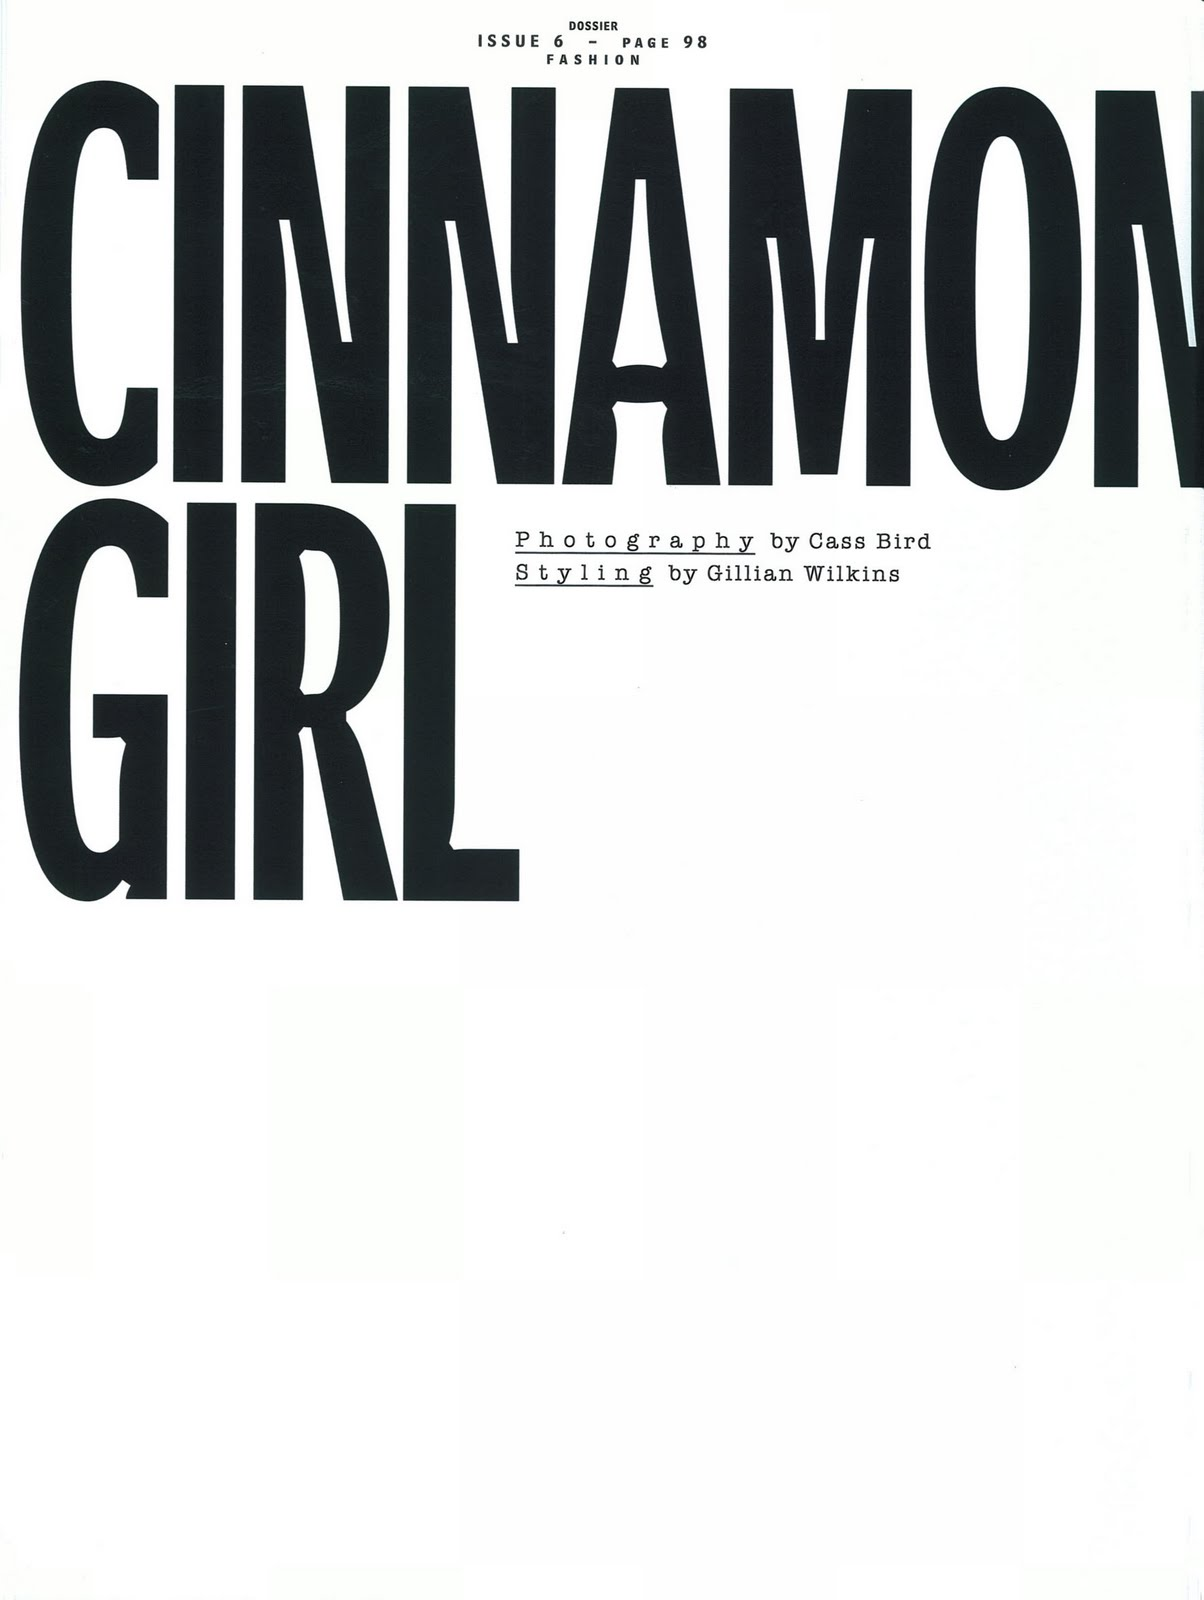 Editorial - Cinnamon Girl Dossier #6 2010 by Cass Bird 1 Ph_Cass Bird.jpg